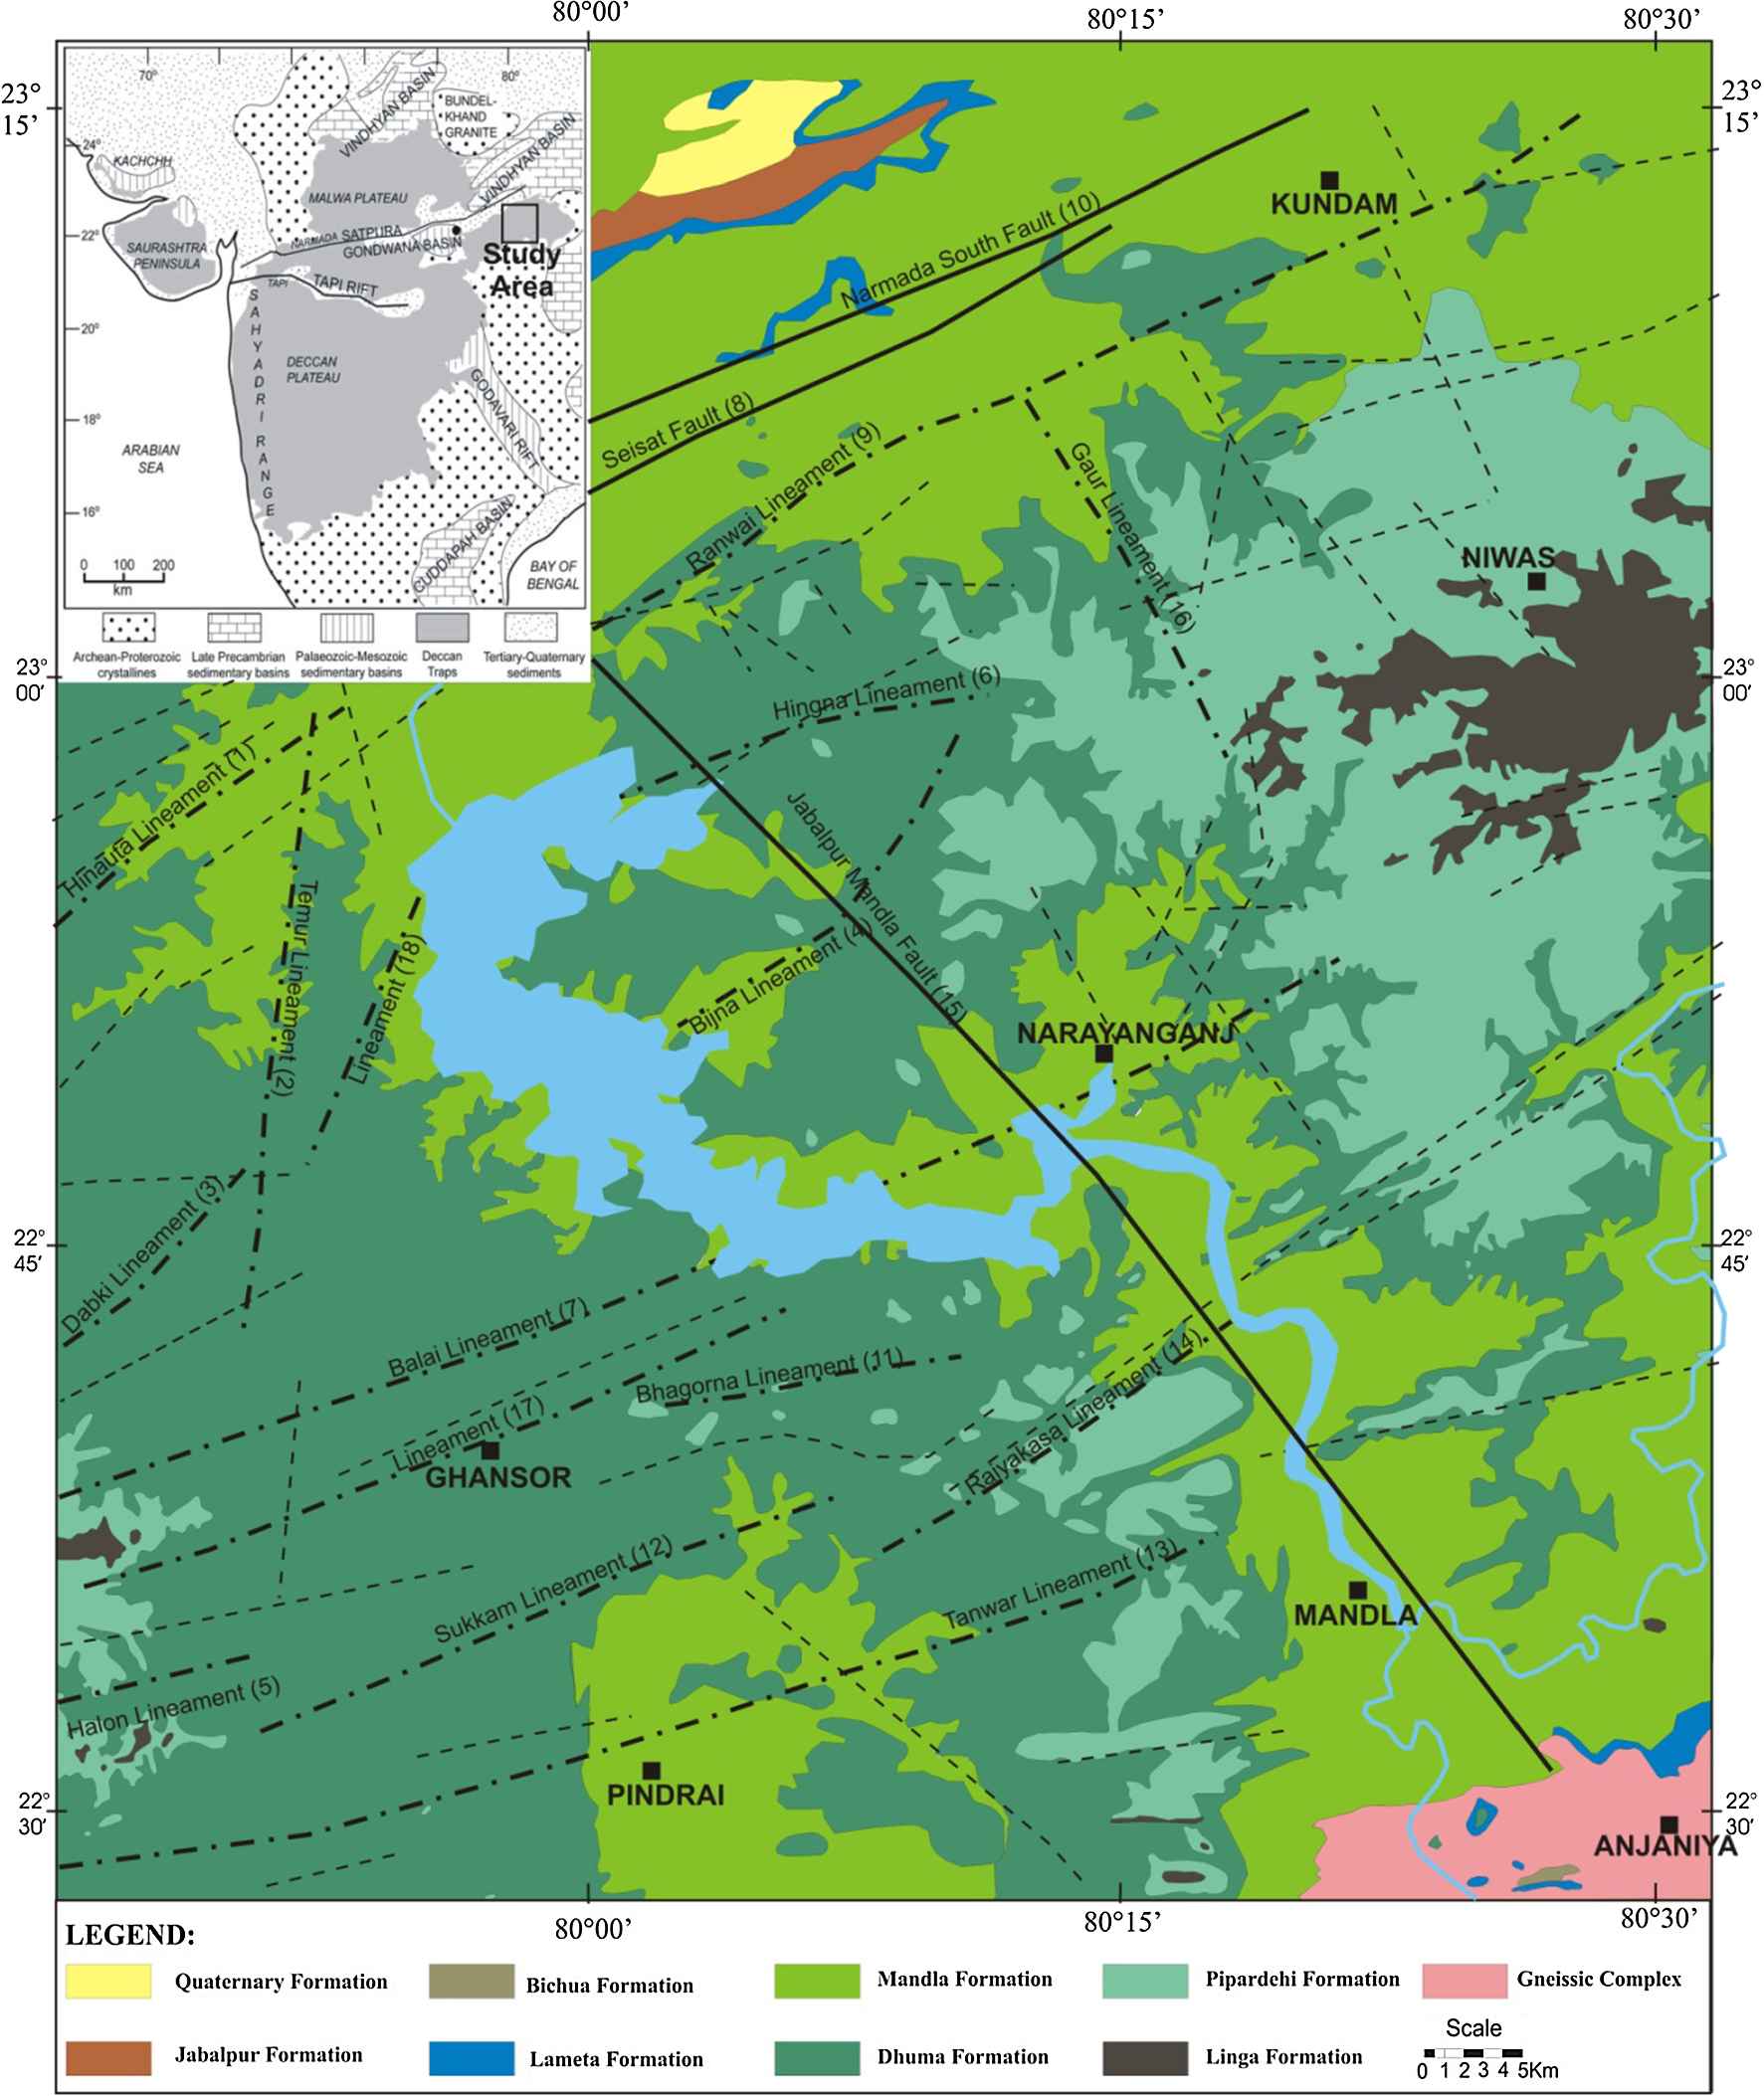 The geological site characterisation of the Mandla region